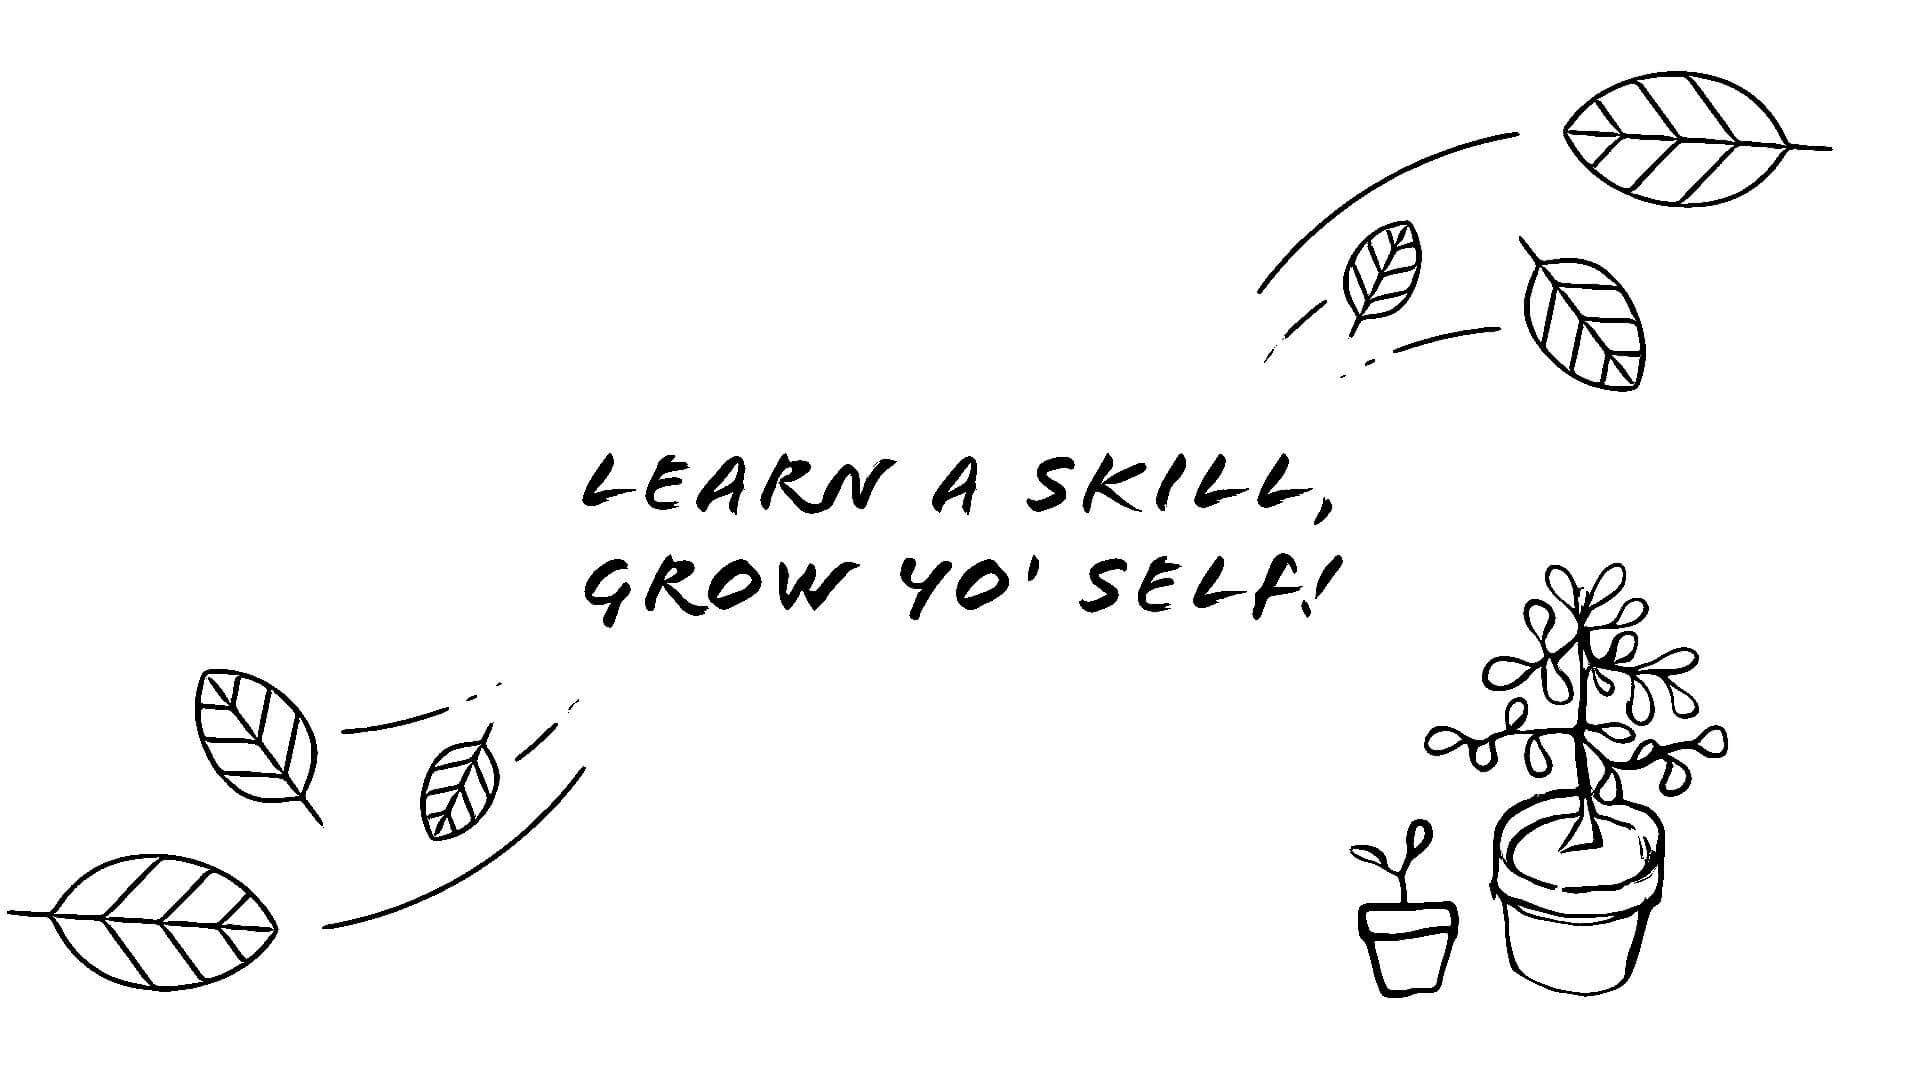 Skills for Self is your free online resource to learn new